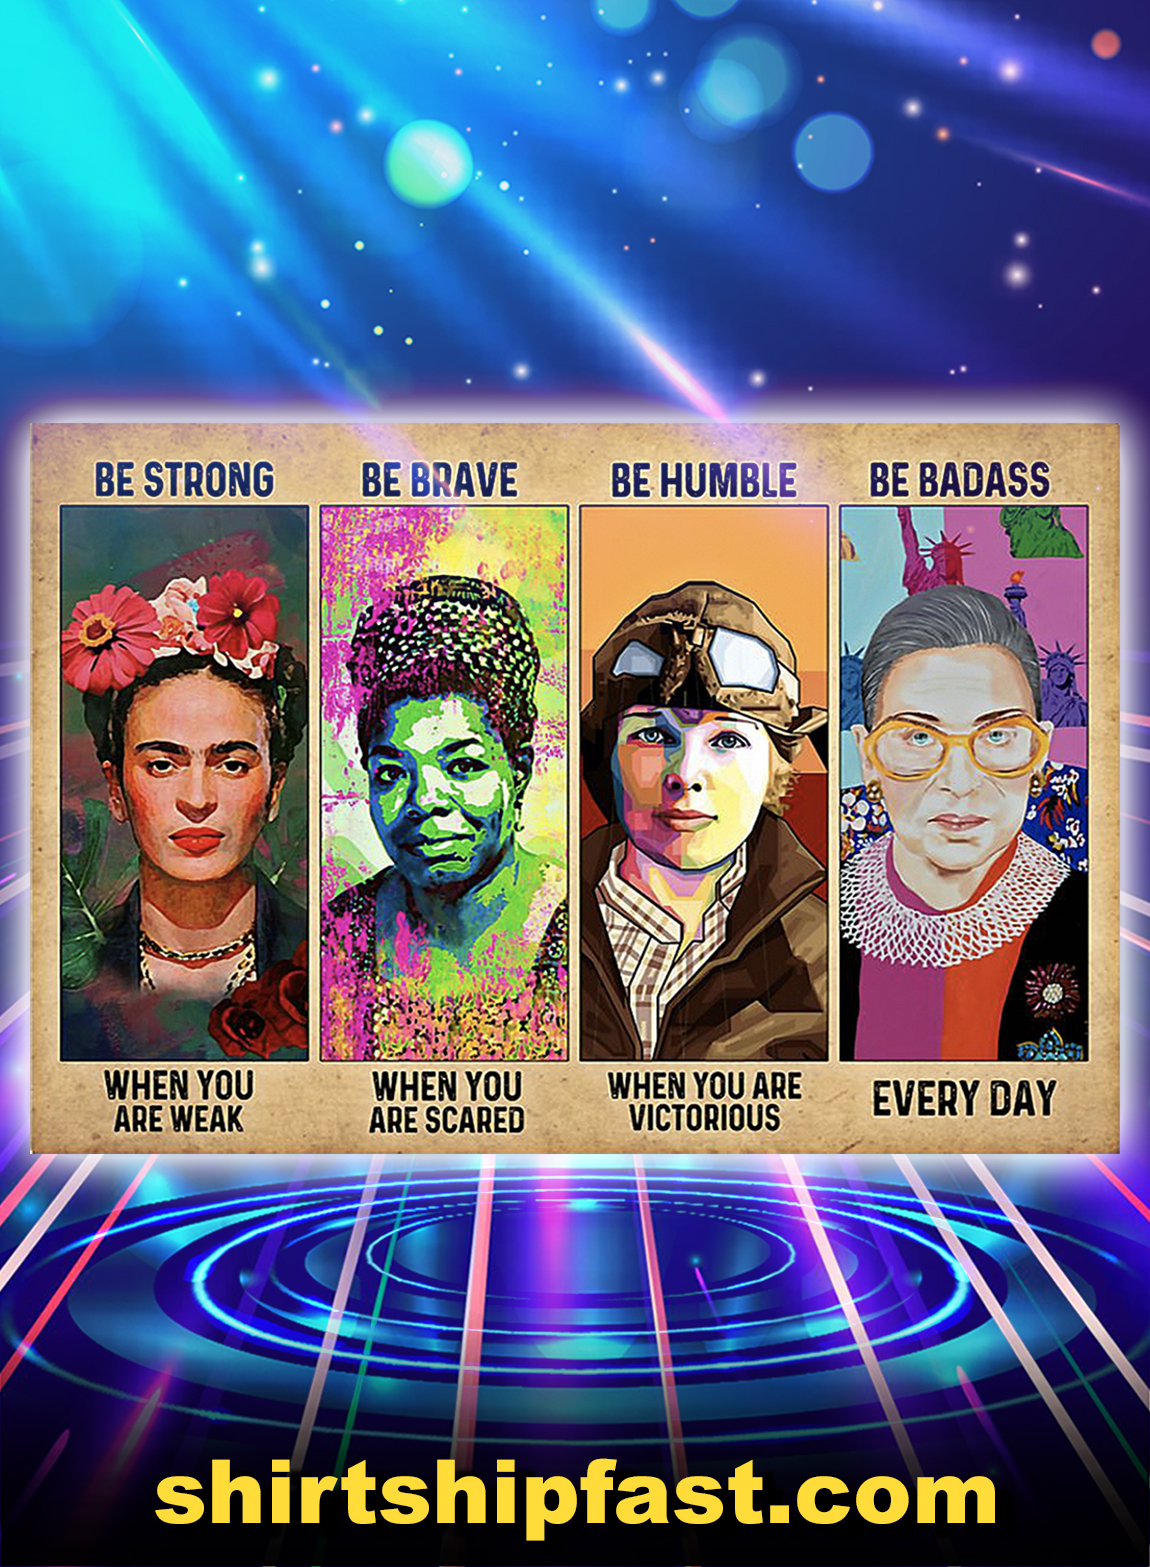 Feminist RBG Frida Kahlo be strong be brave be humble be badass poster - A3